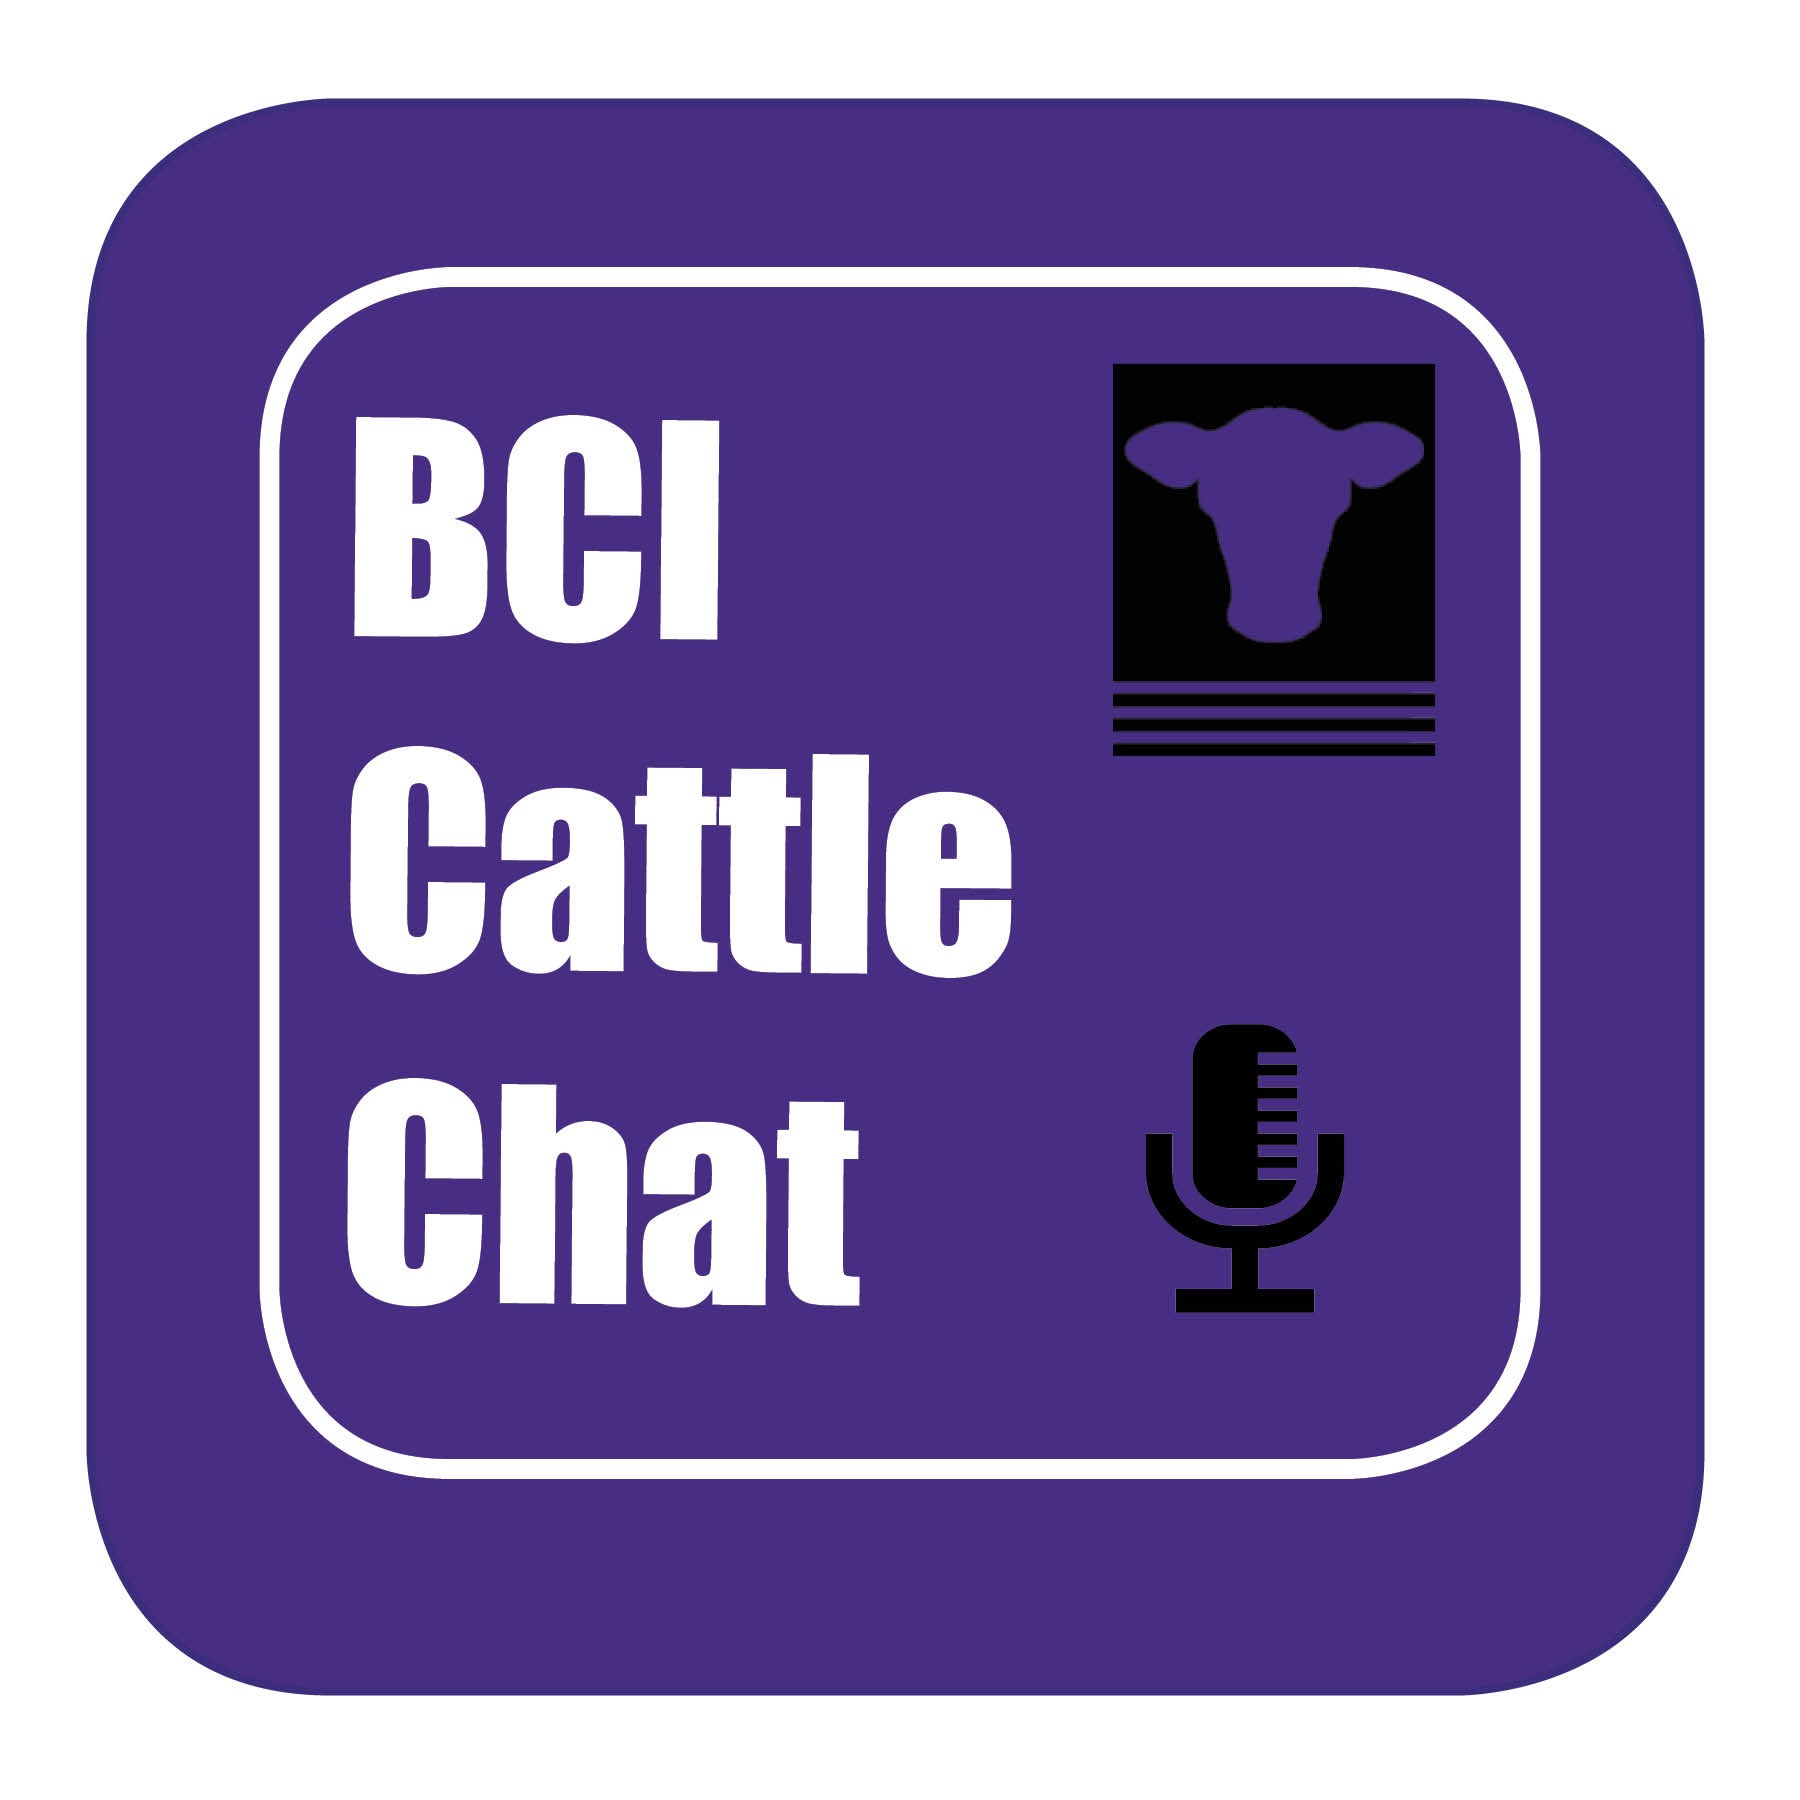 BCI Cattle Chat - Episode 15